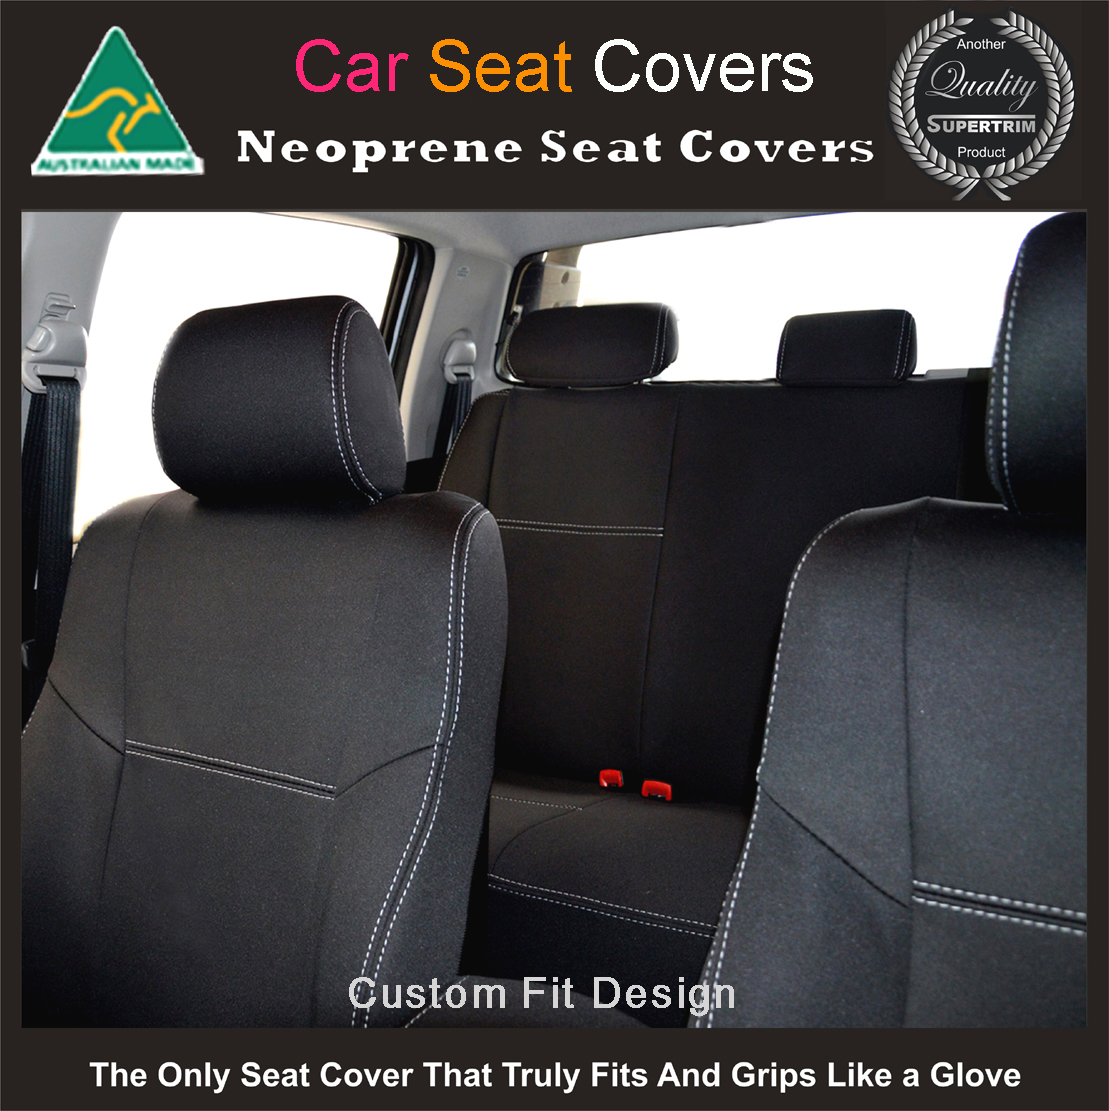 Toyota Rav4 Seat Covers >> Holden Captiva ( 2017 model available) 2nd Row Seat Covers Premium Neoprene (Automotive-grade ...